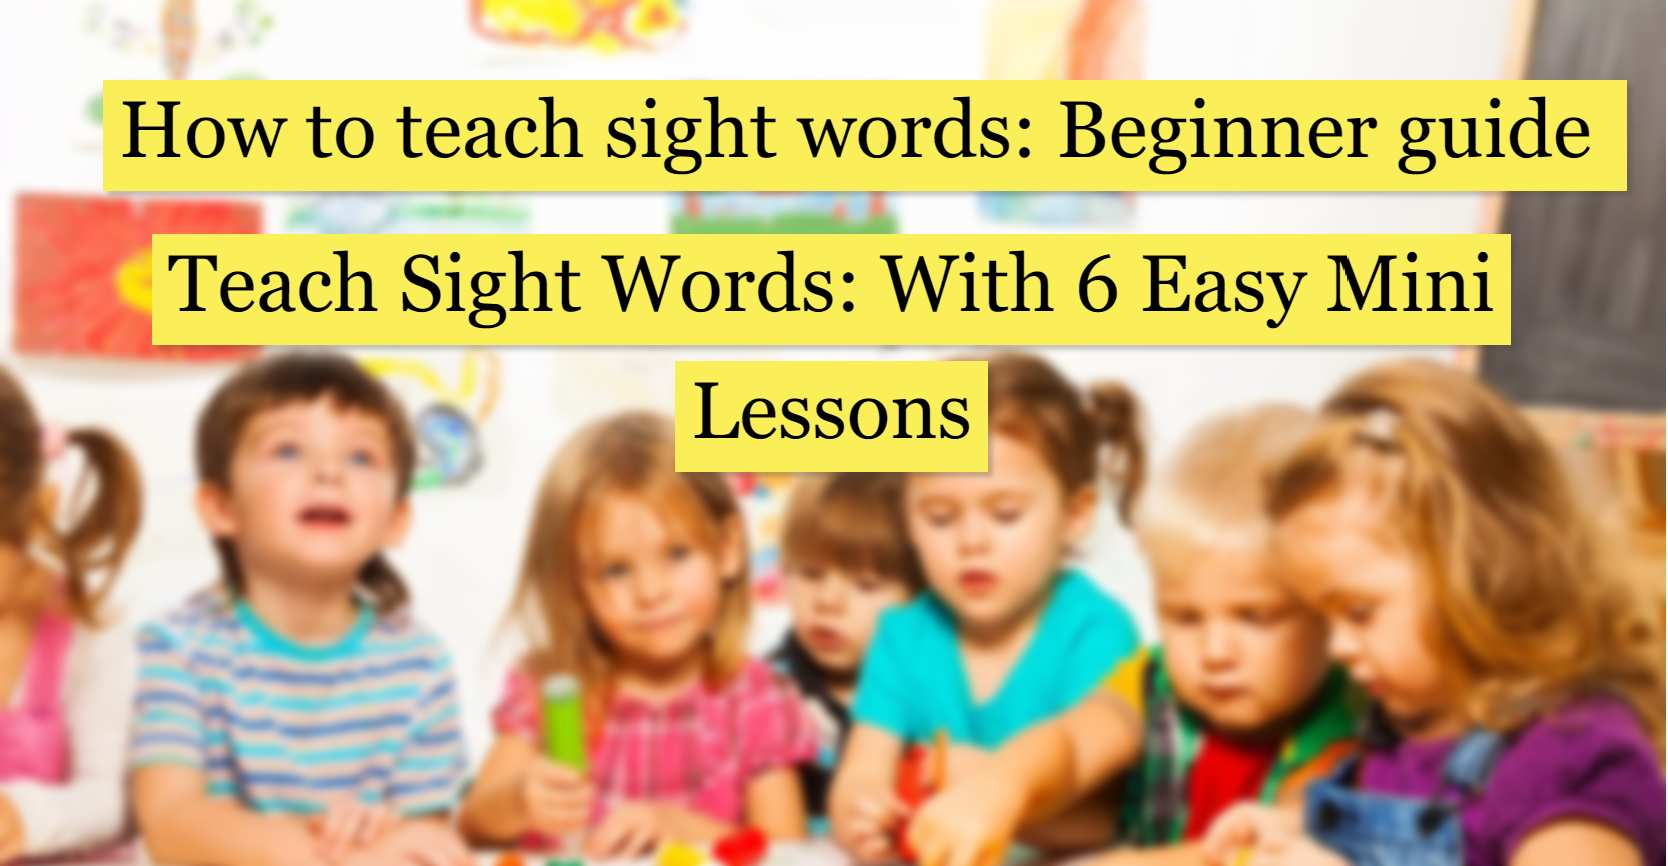 BOOKS-How to teach sight words_ Beginner guide-Teach Sight Words_ With 6 Easy Mini Lessons